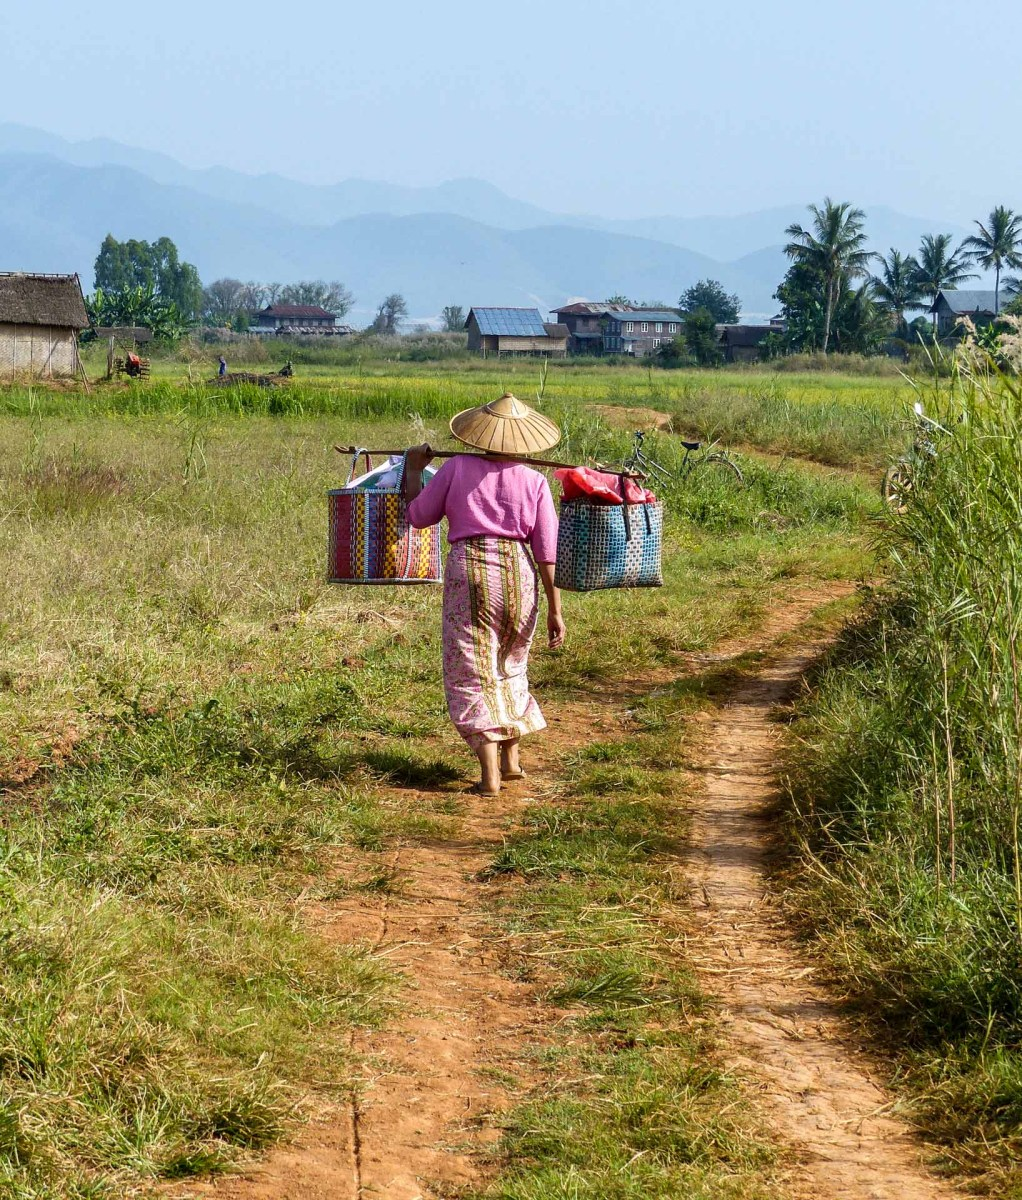 Burmese woman carrying goods in shoulder baskets along gravel road at Inle Lake